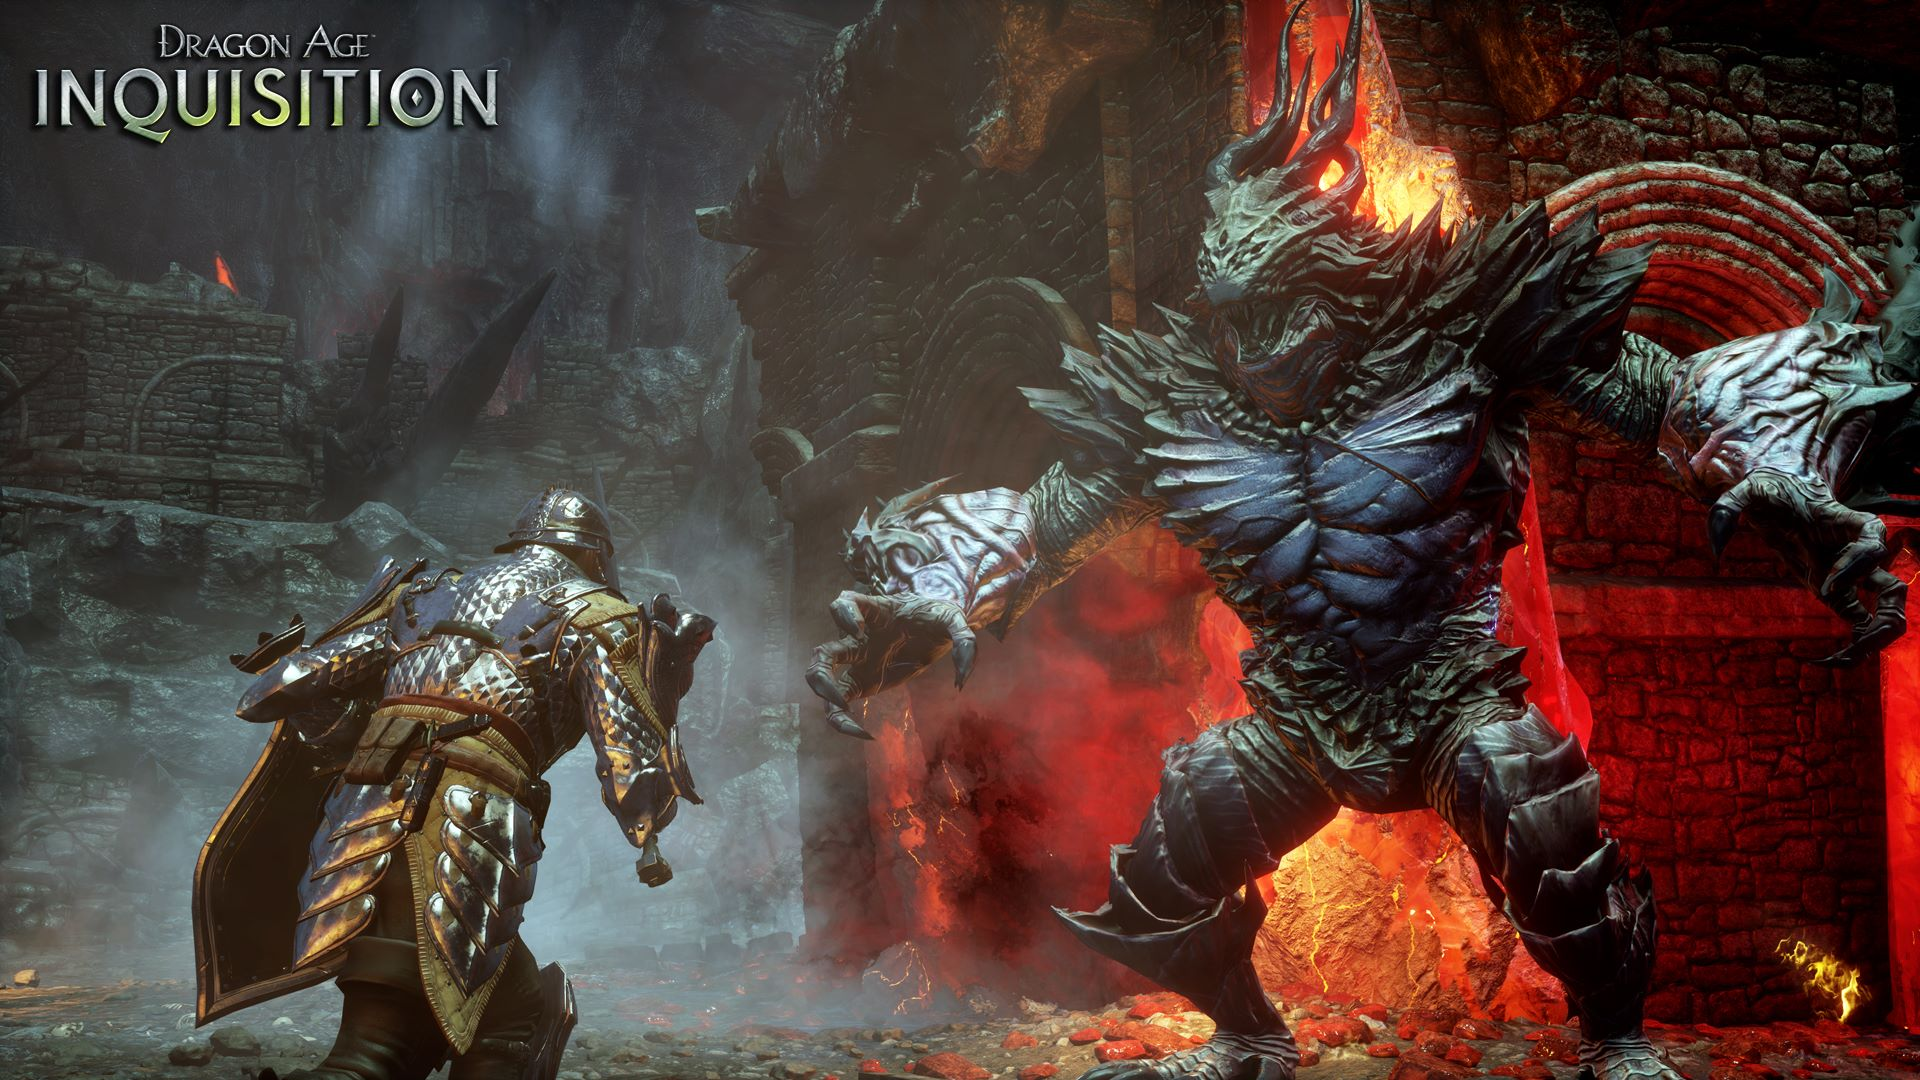 Dragon Age: Inquisition (Origin Key RU)